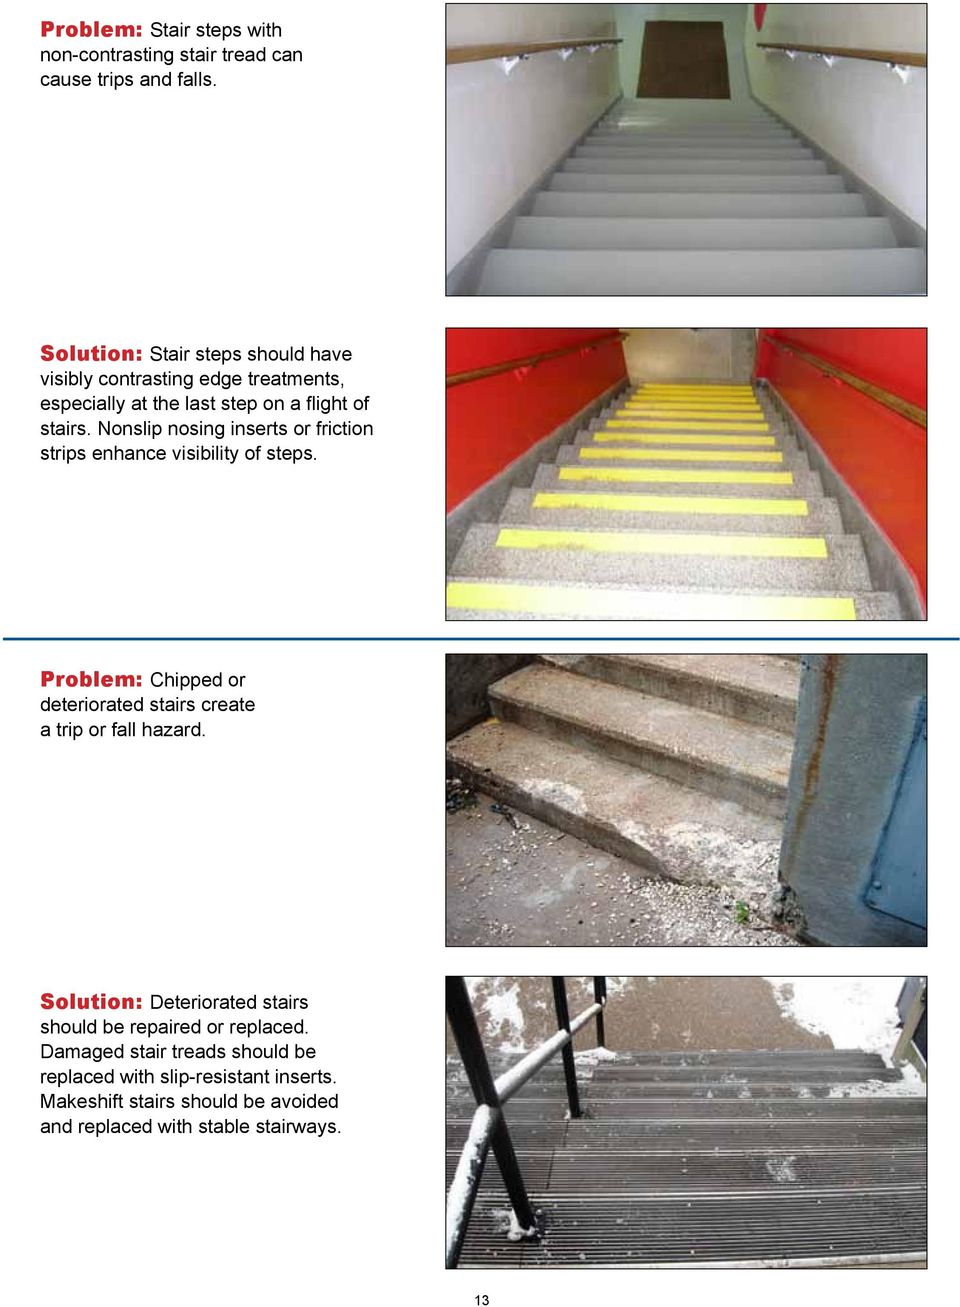 Nonslip nosing inserts or friction strips enhance visibility of steps.